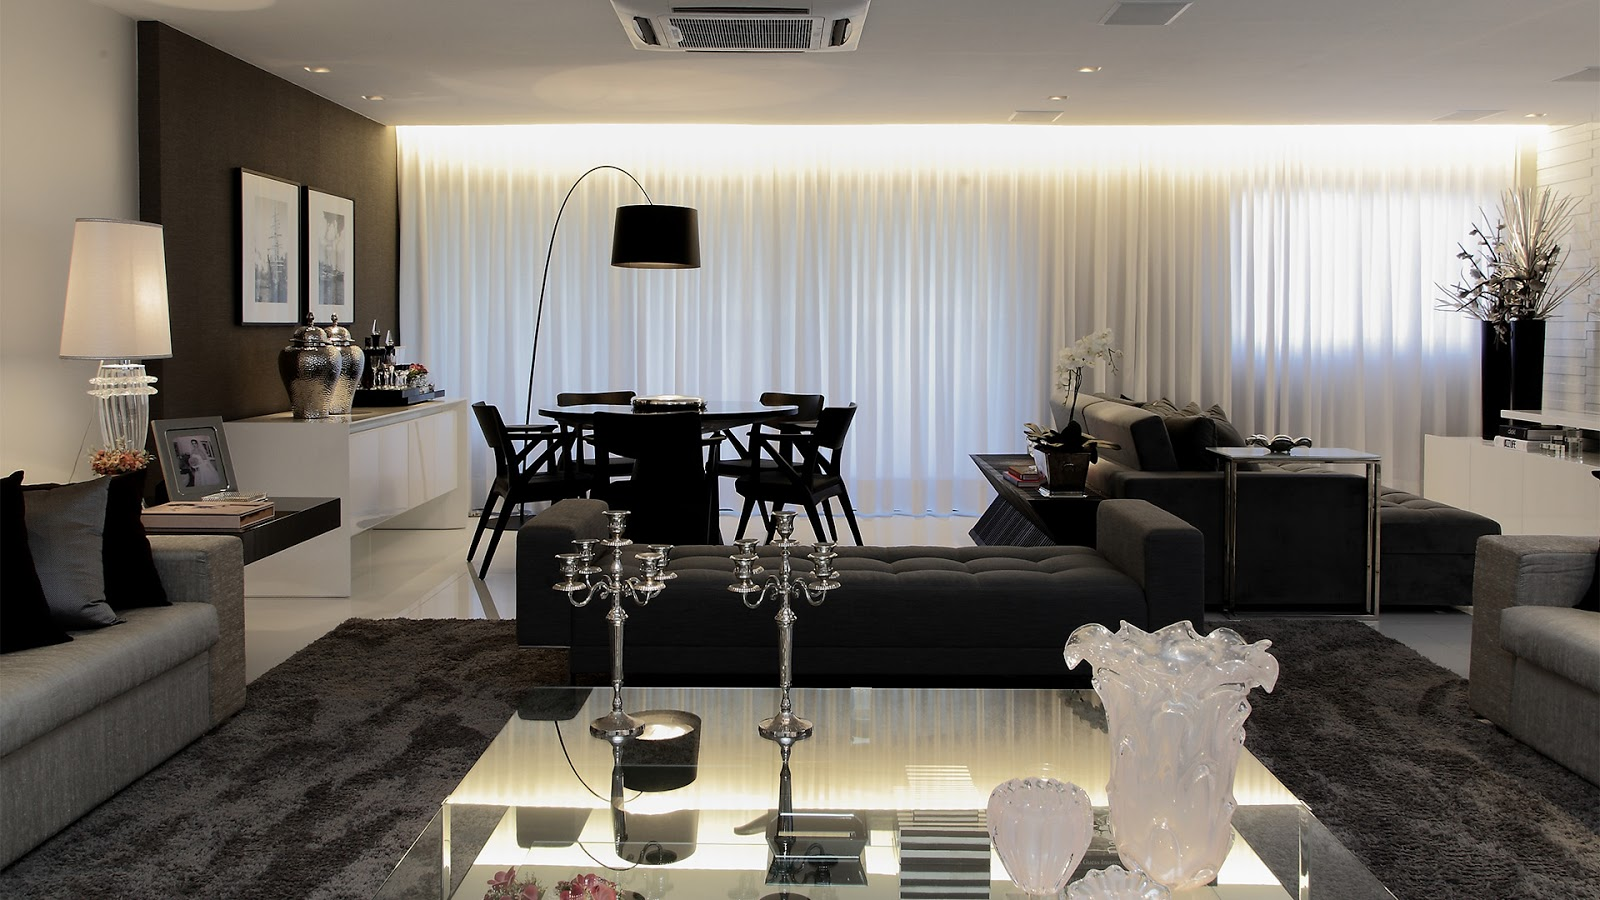 decoracao sala branco e preto:Salas de estar, jantar e tv integradas e decoradas de preto, branco e